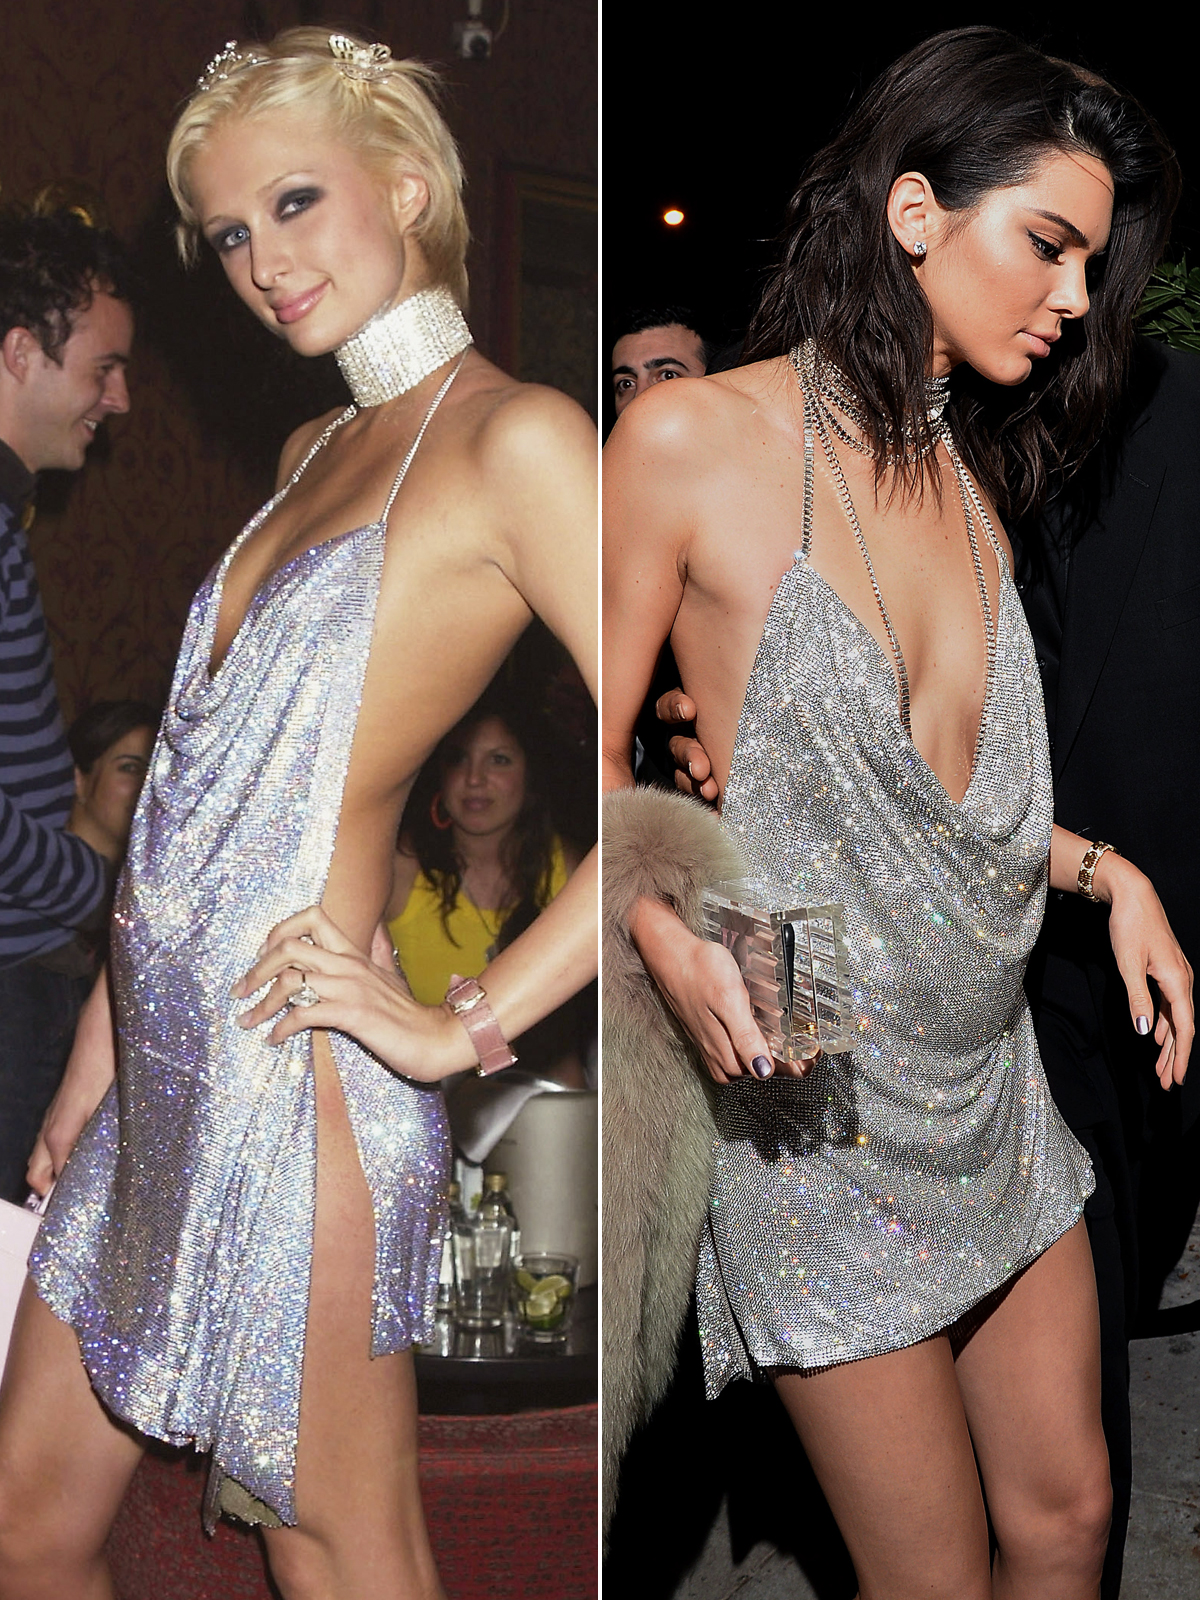 LONDON - MAY 3: Paris Hilton celebrates her 21st Birthday Party at the Stork Rooms in Swallow Street on May 3, 2002 in London. (Photo by Dave Benett/Getty Images) Kendall Jenner's Birthday Party at Deliah Pictured: Kendall Jenner Ref: SPL1386161 021116 Picture by: Splash News Splash News and Pictures Los Angeles: 310-821-2666 New York: 212-619-2666 London: 870-934-2666 photodesk@splashnews.com